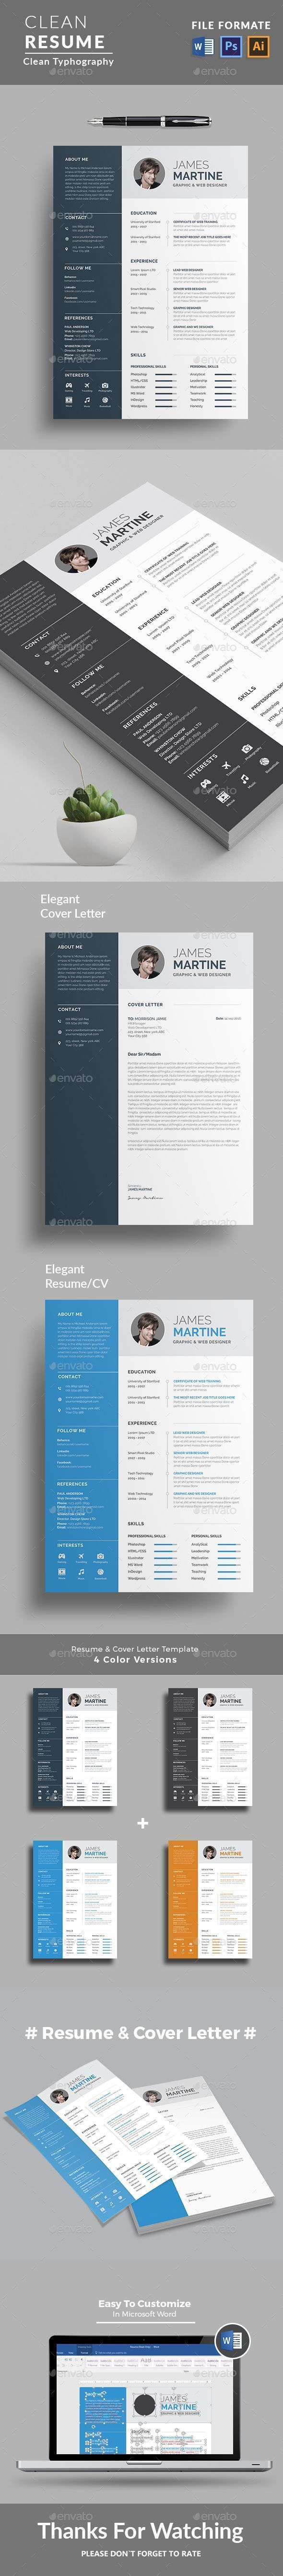 driver cover letter%0A This is Resume Templates    u   c Resume Templates  u   d is the super clean The  flexible page designs are easy to use and customize  modern and  professional Resume